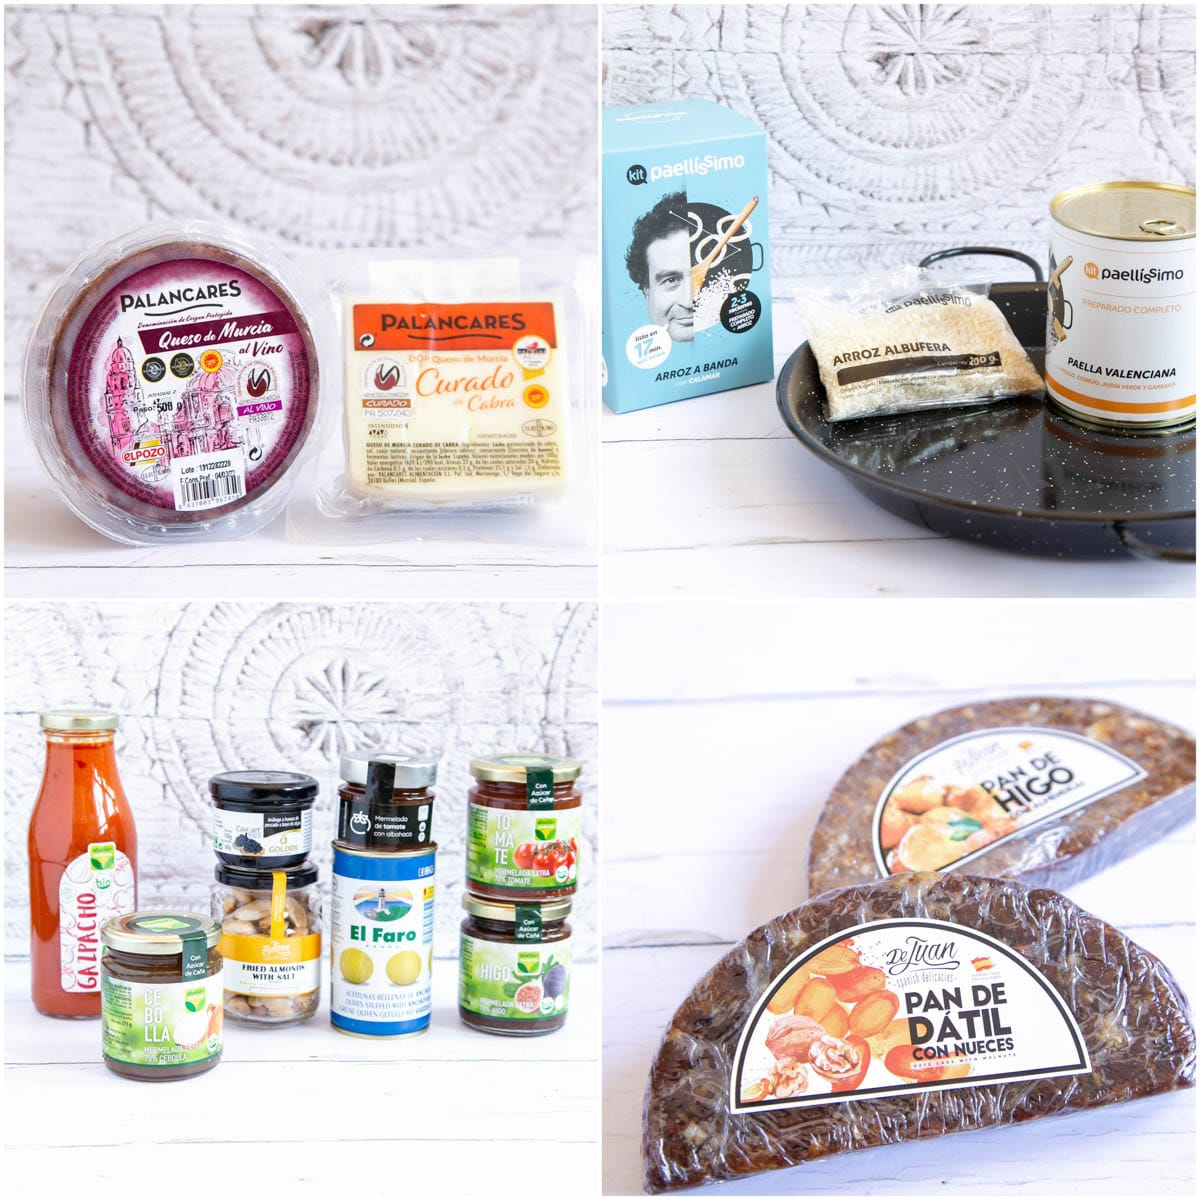 A collage of four layouts of products from Murcia: cheese, paella kit, dried fruit cakes and assorted items.